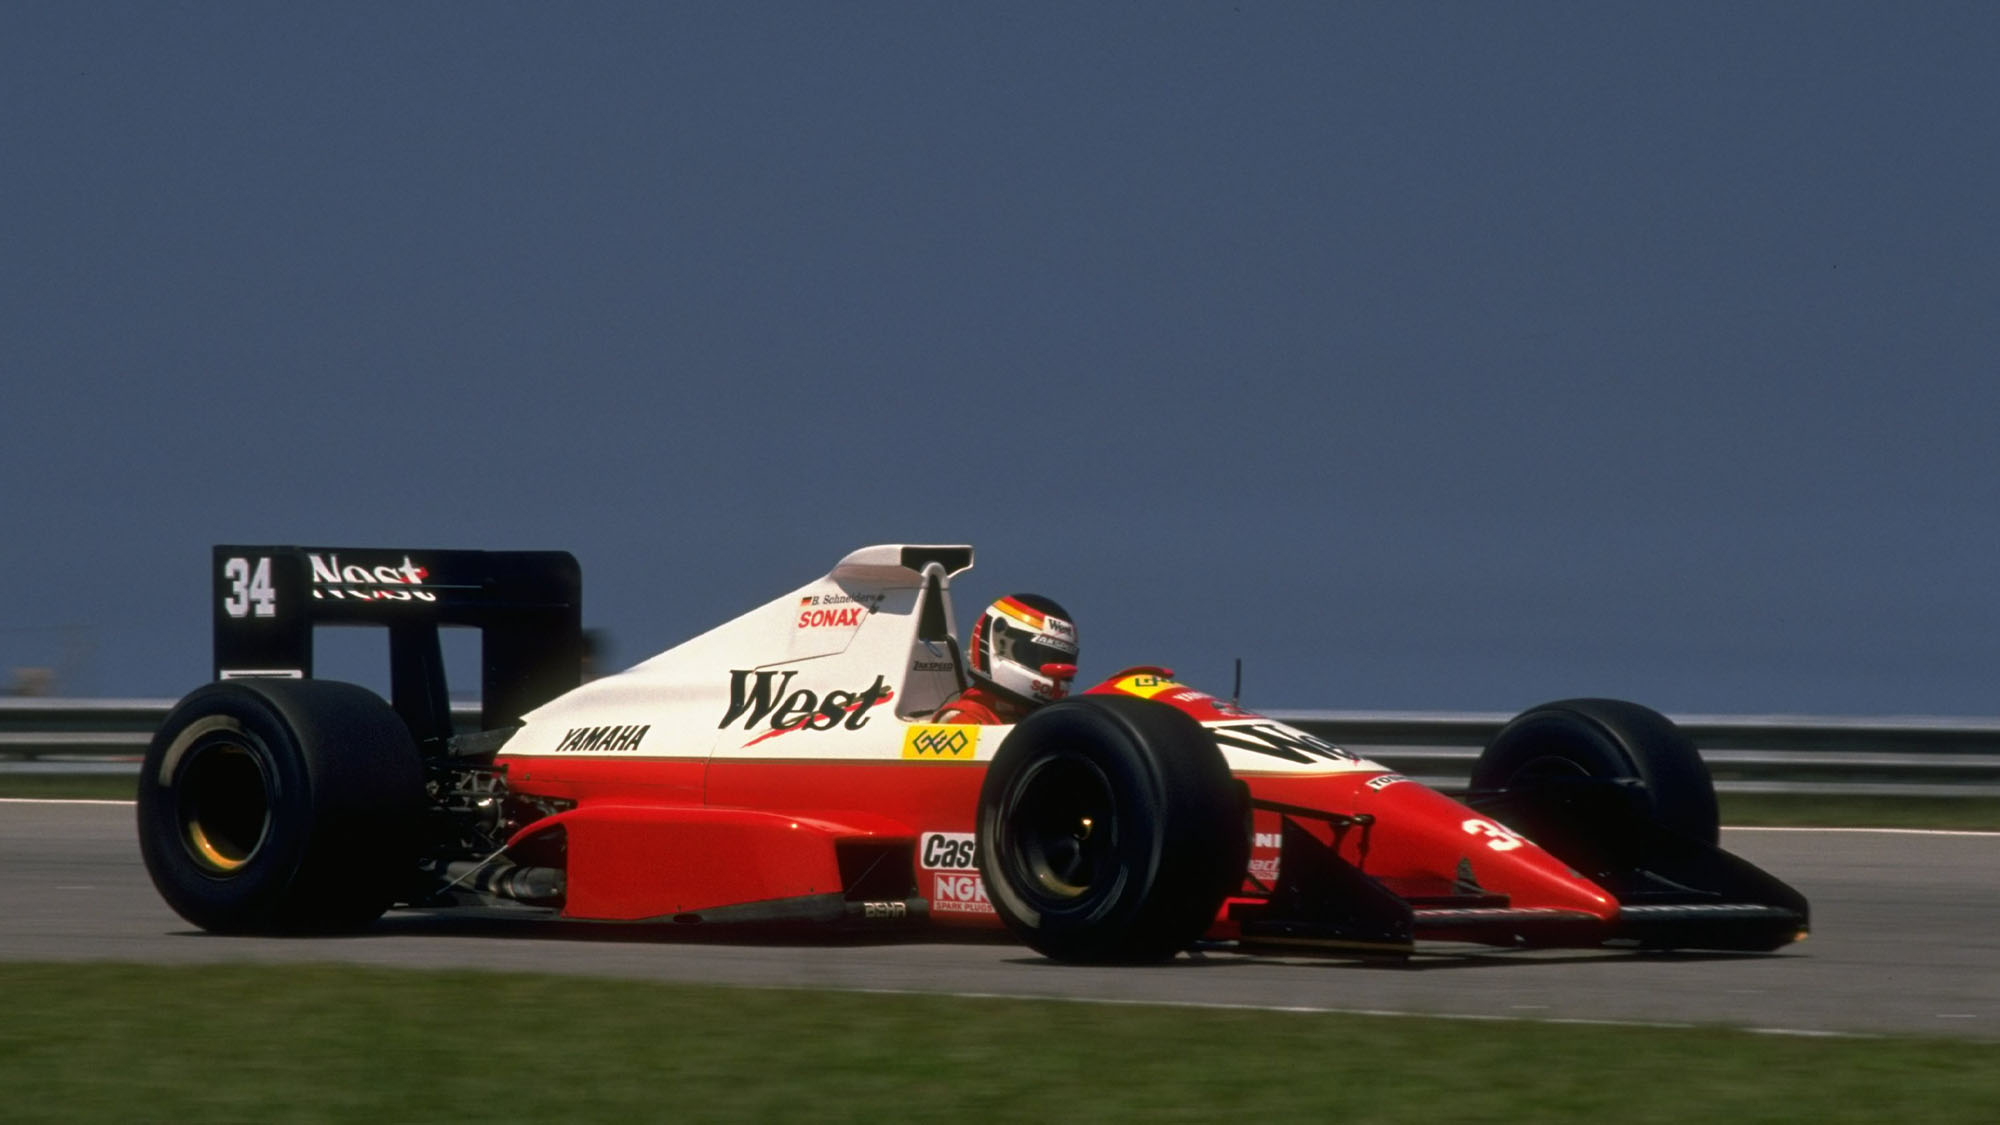 1989: Bernd Schneider of Germany in action in his Zakspeed Yamaha before the Brazilian Grand Prix at the Rio circuit in Brazil. Schneider did not qualify. \ Mandatory Credit: Pascal Rondeau/Allsport